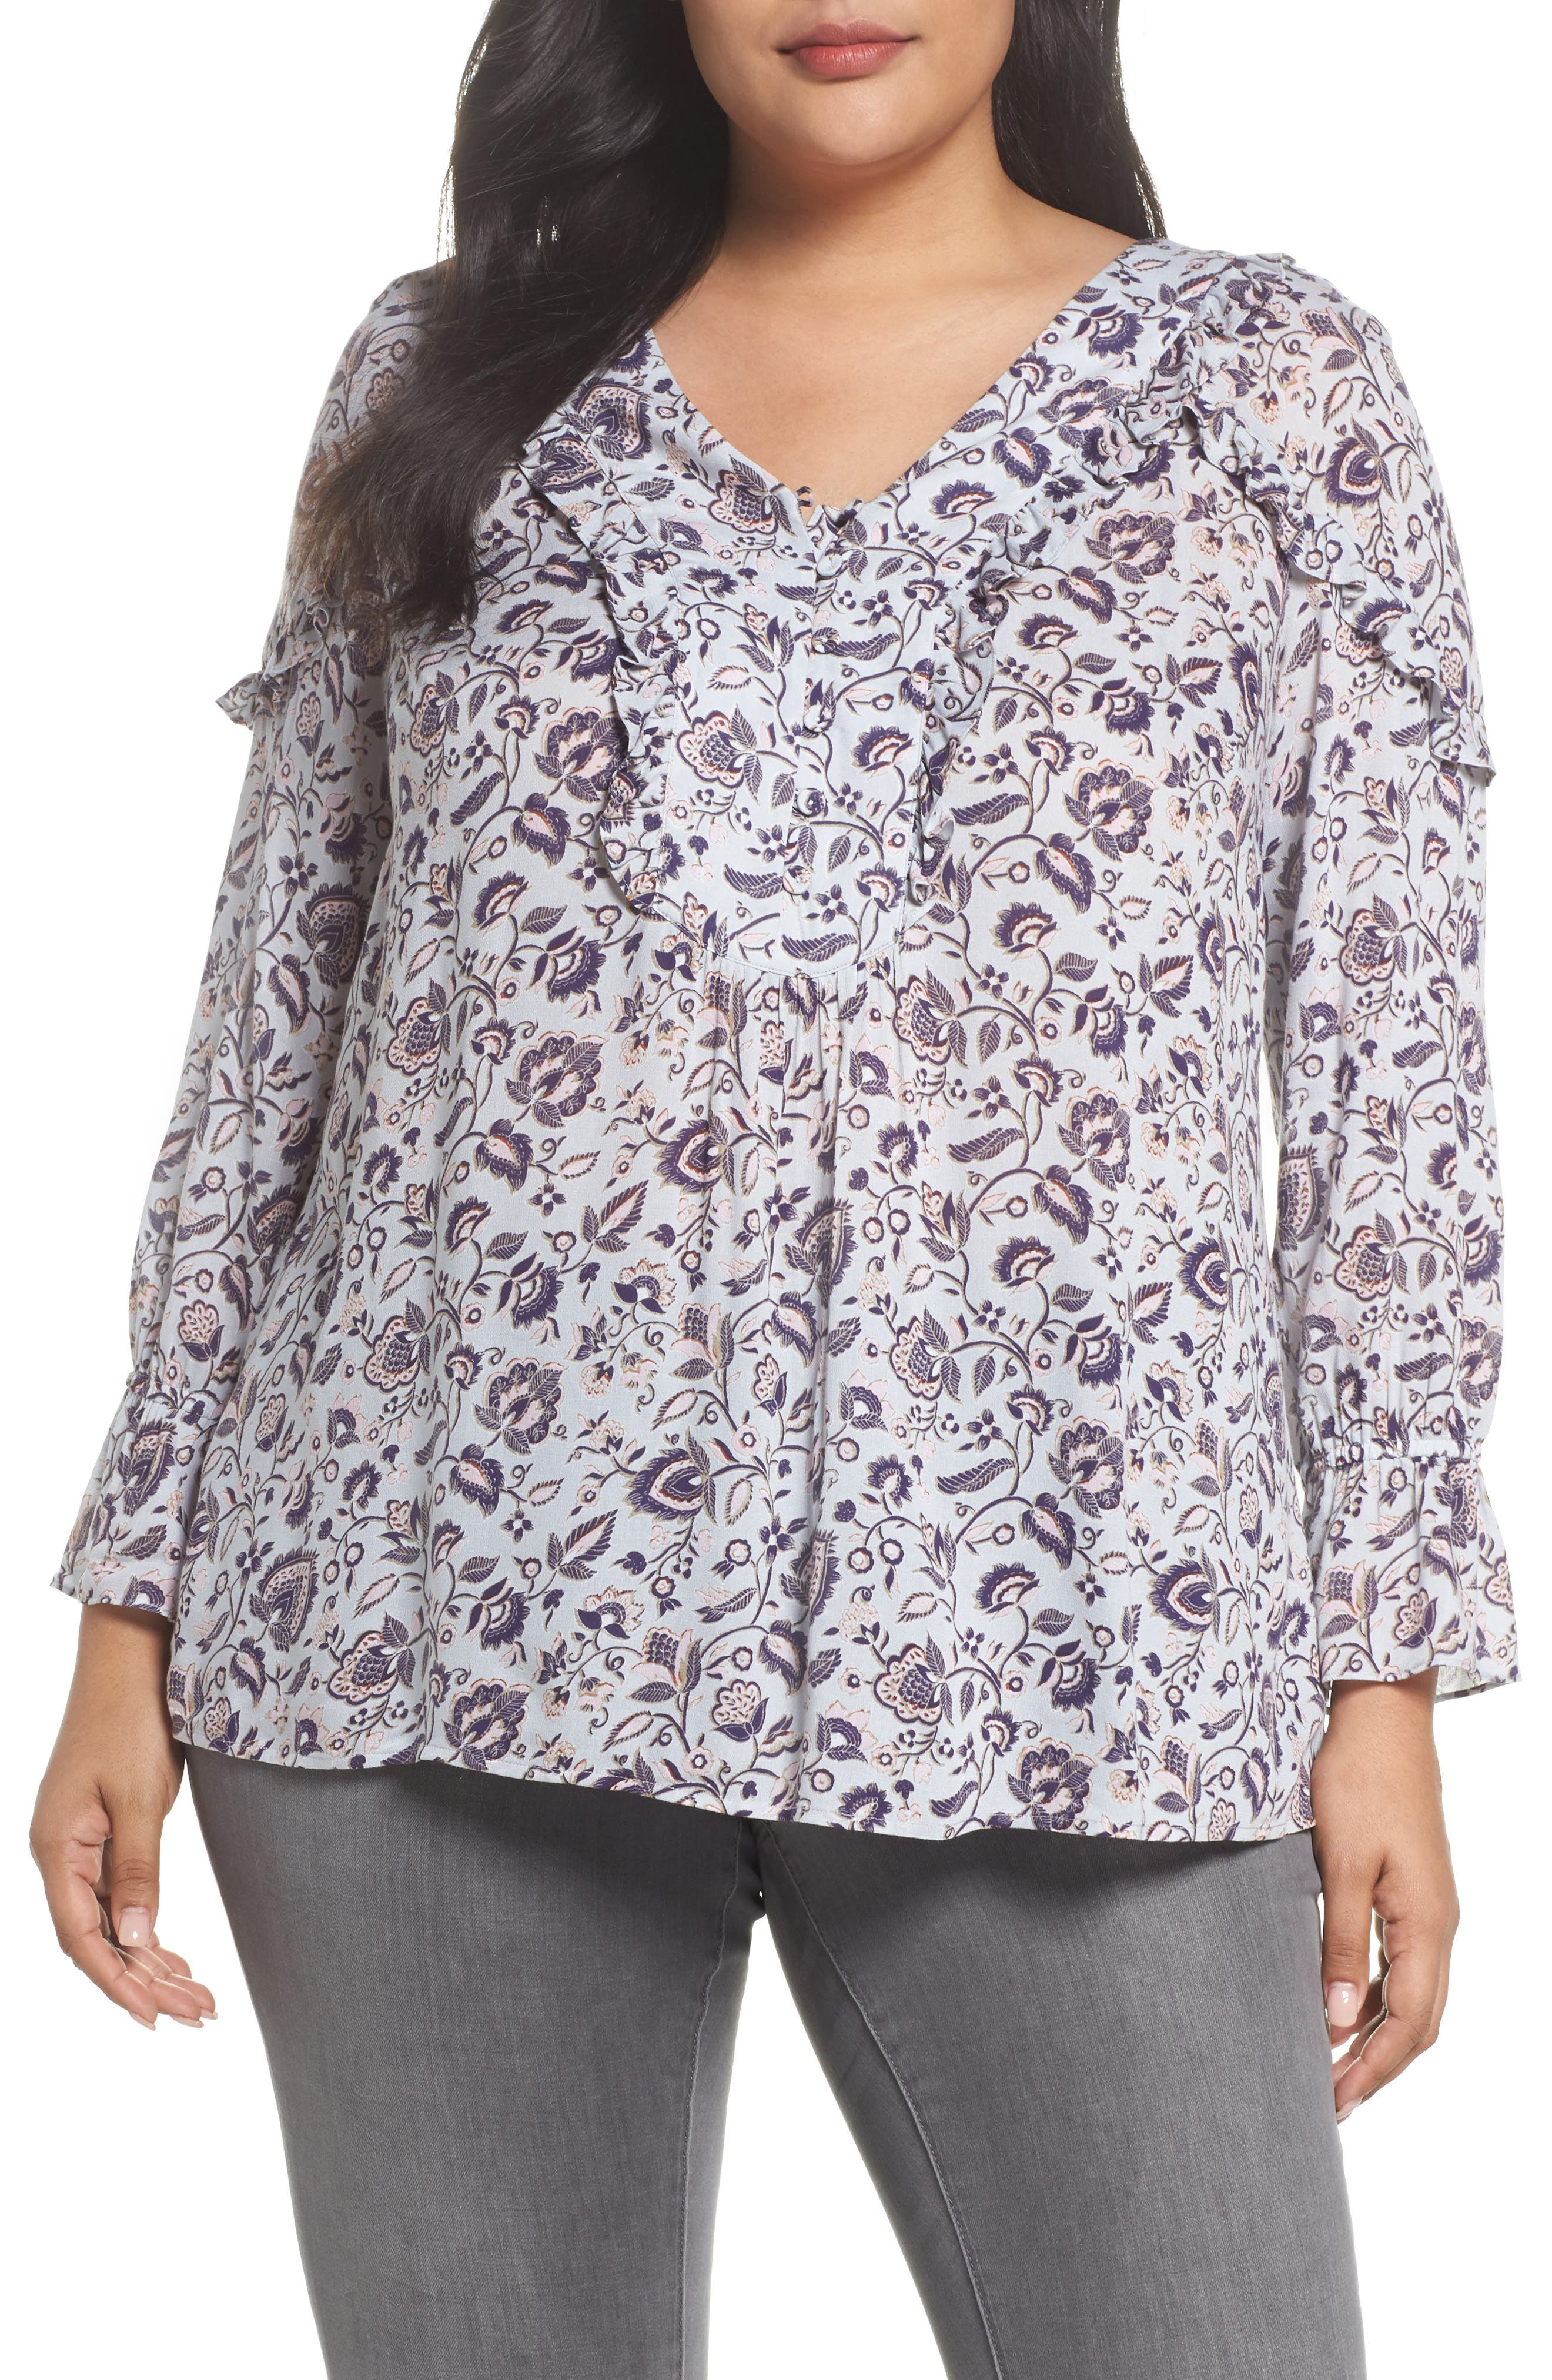 Ruffle Trim Floral Top,                             Main thumbnail 1, color,                             C959n Sky